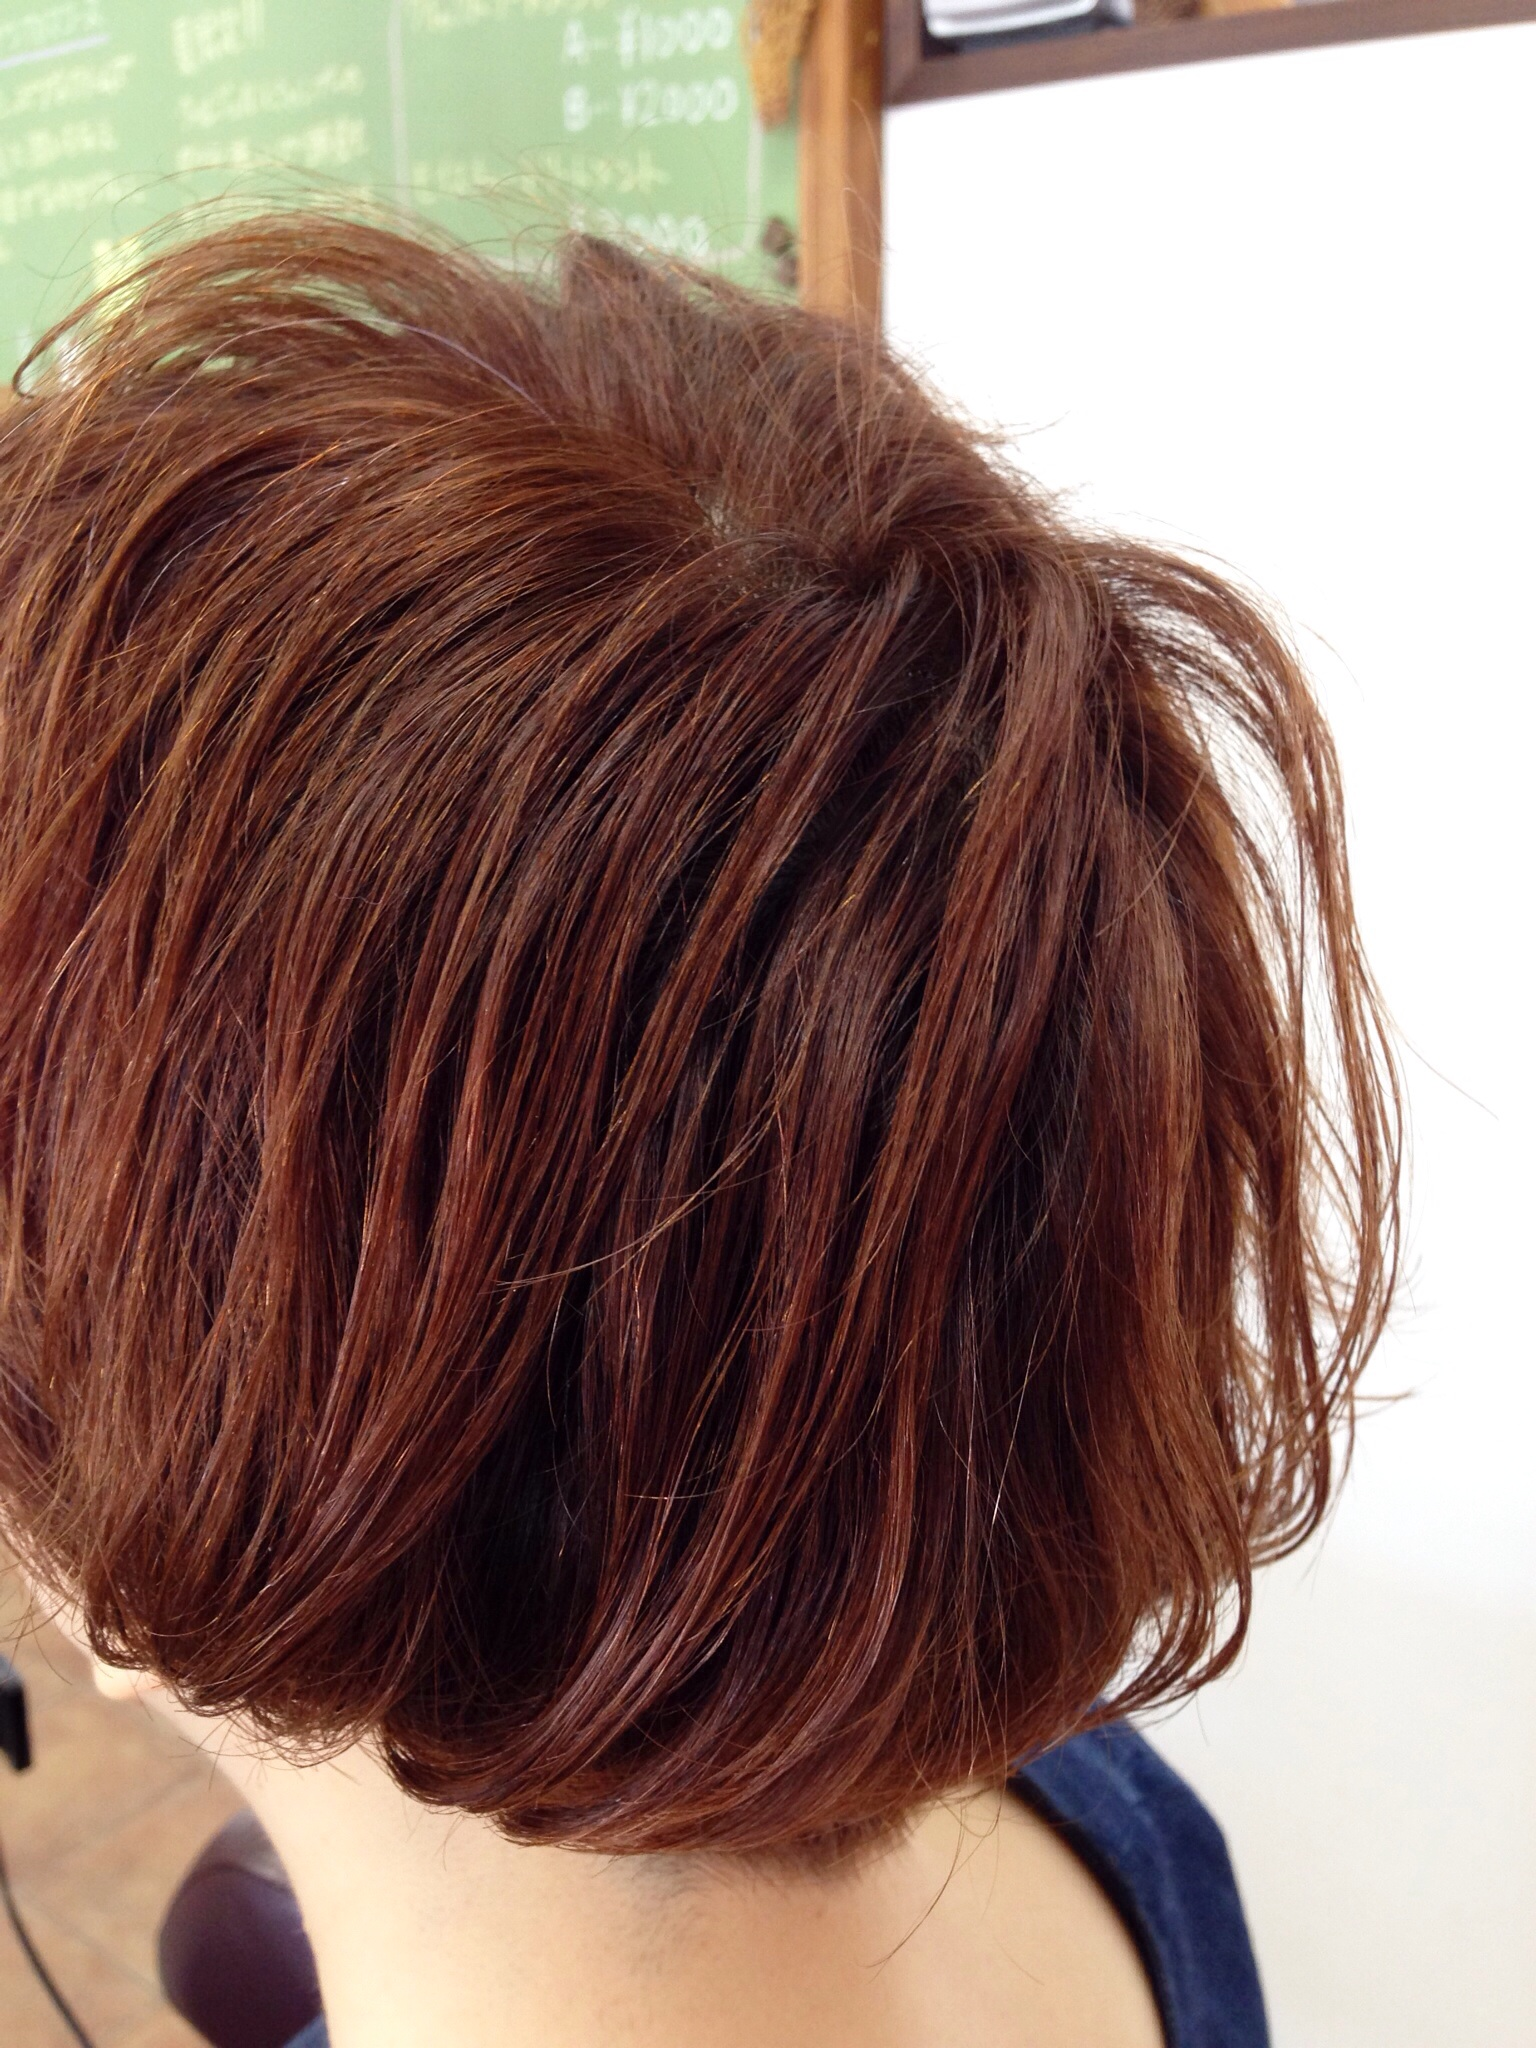 salon work 4  秋カラー